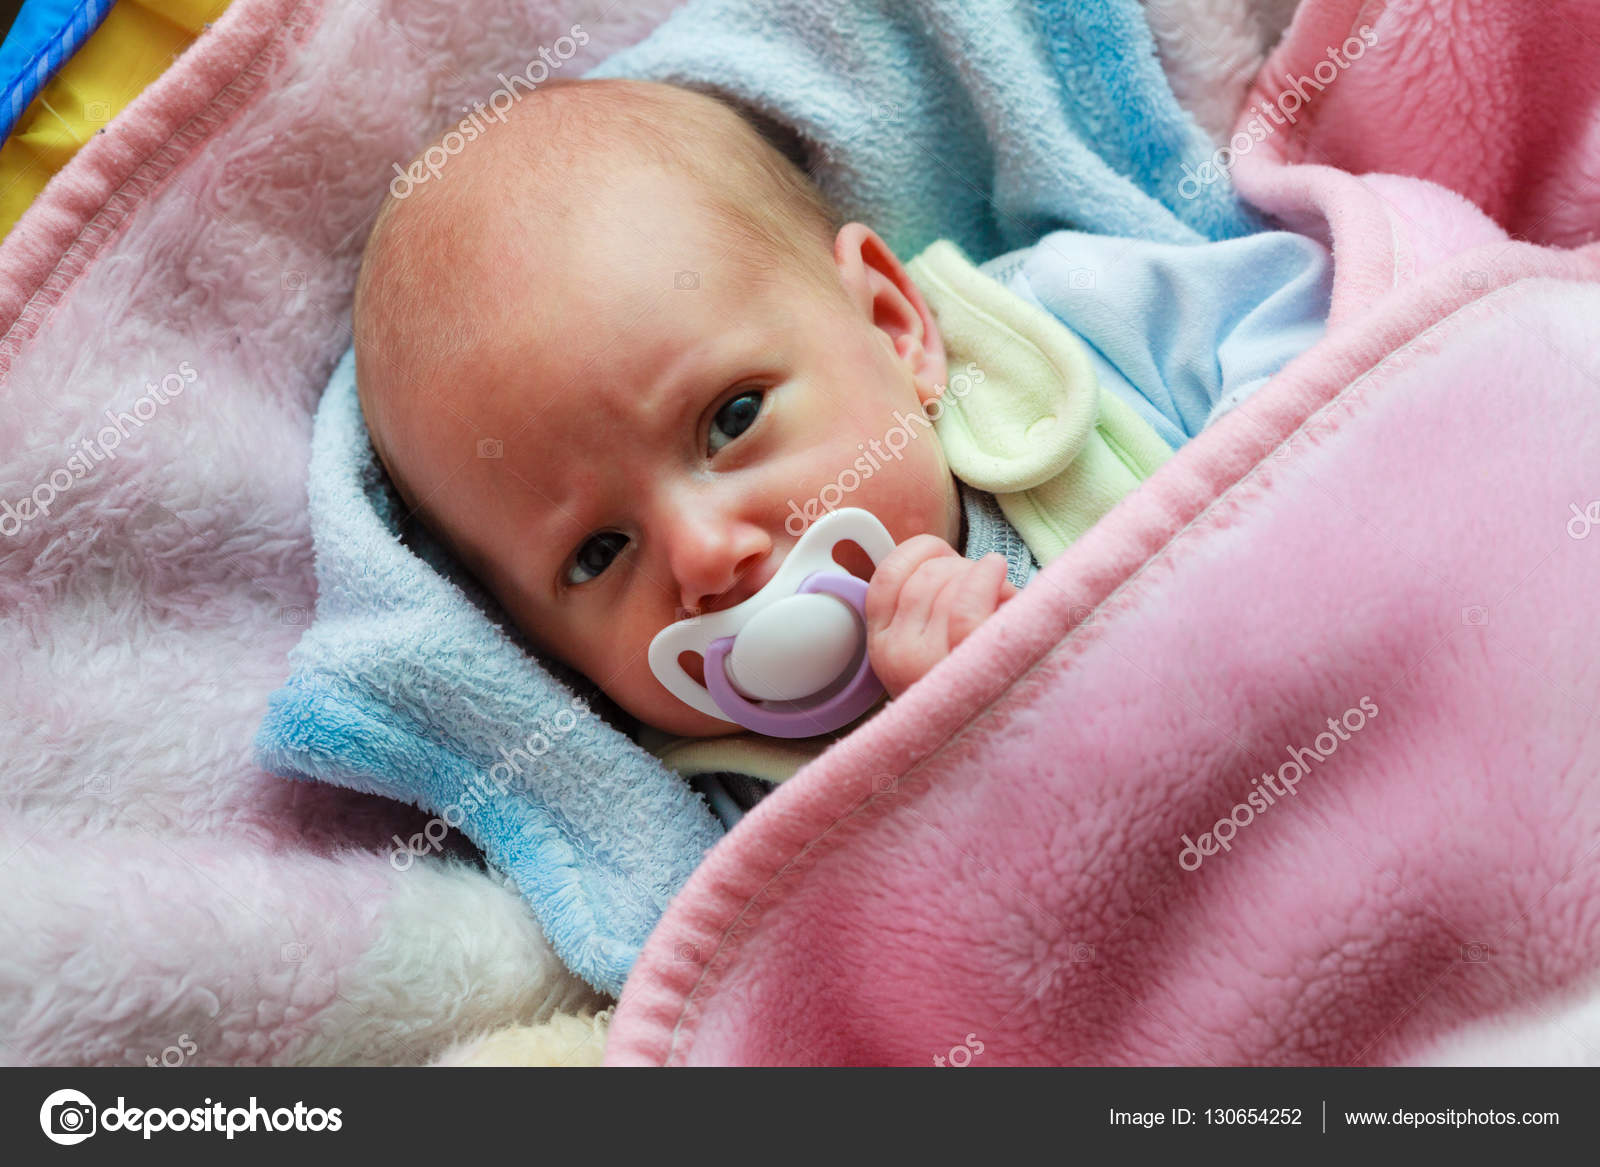 Newborn Babies For Dummies Newborn Baby Lying In Bed With Dummy Stock Photo